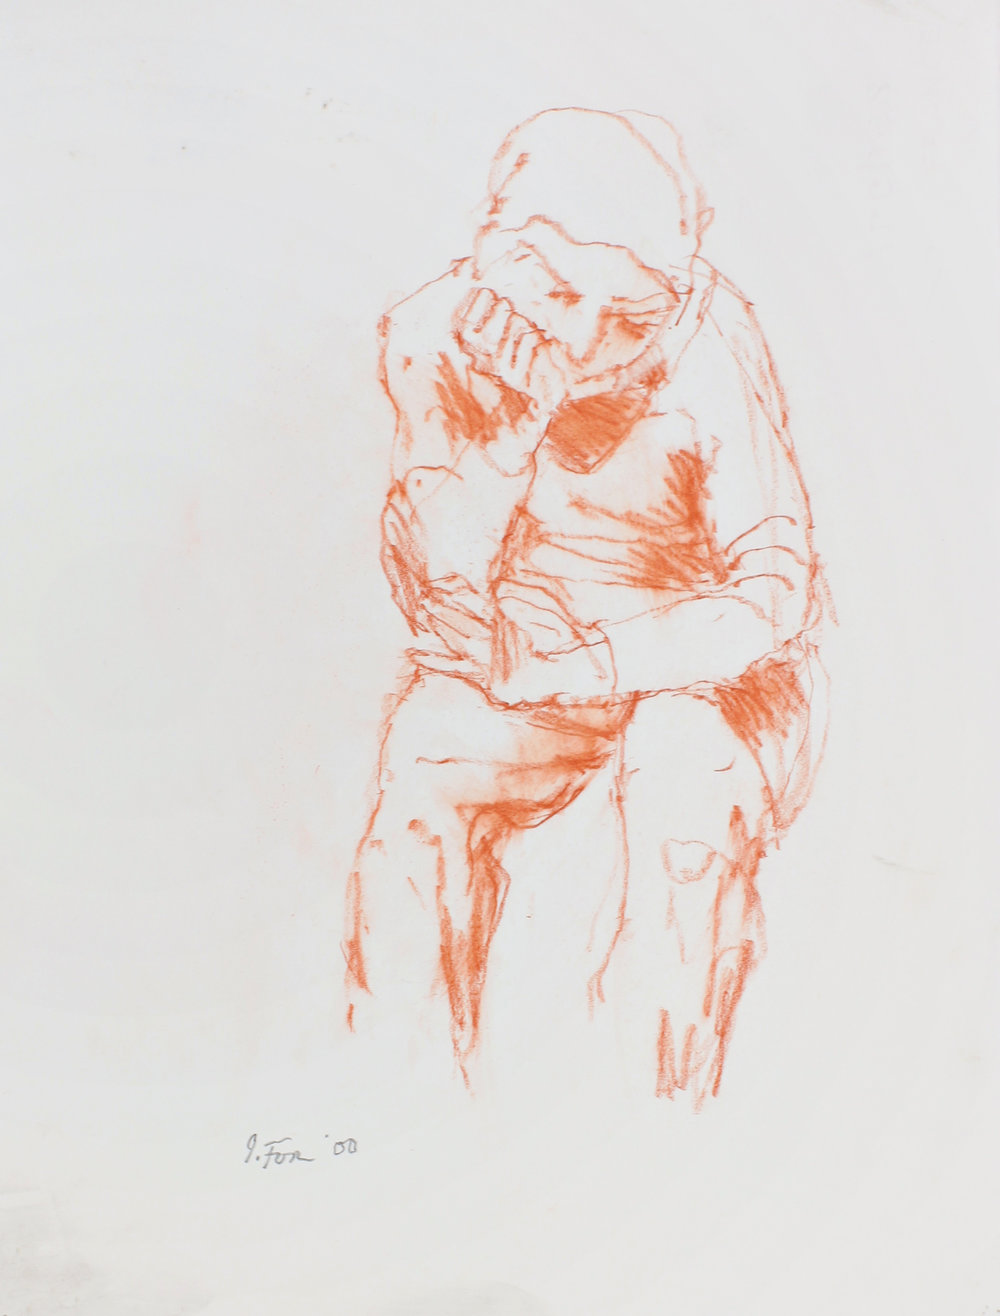 2000_Seated_Figure_withhand_at_Jaw_and_Arms_Across_Thighs_red_conté_on_paper_15x11in_WPF575.jpg